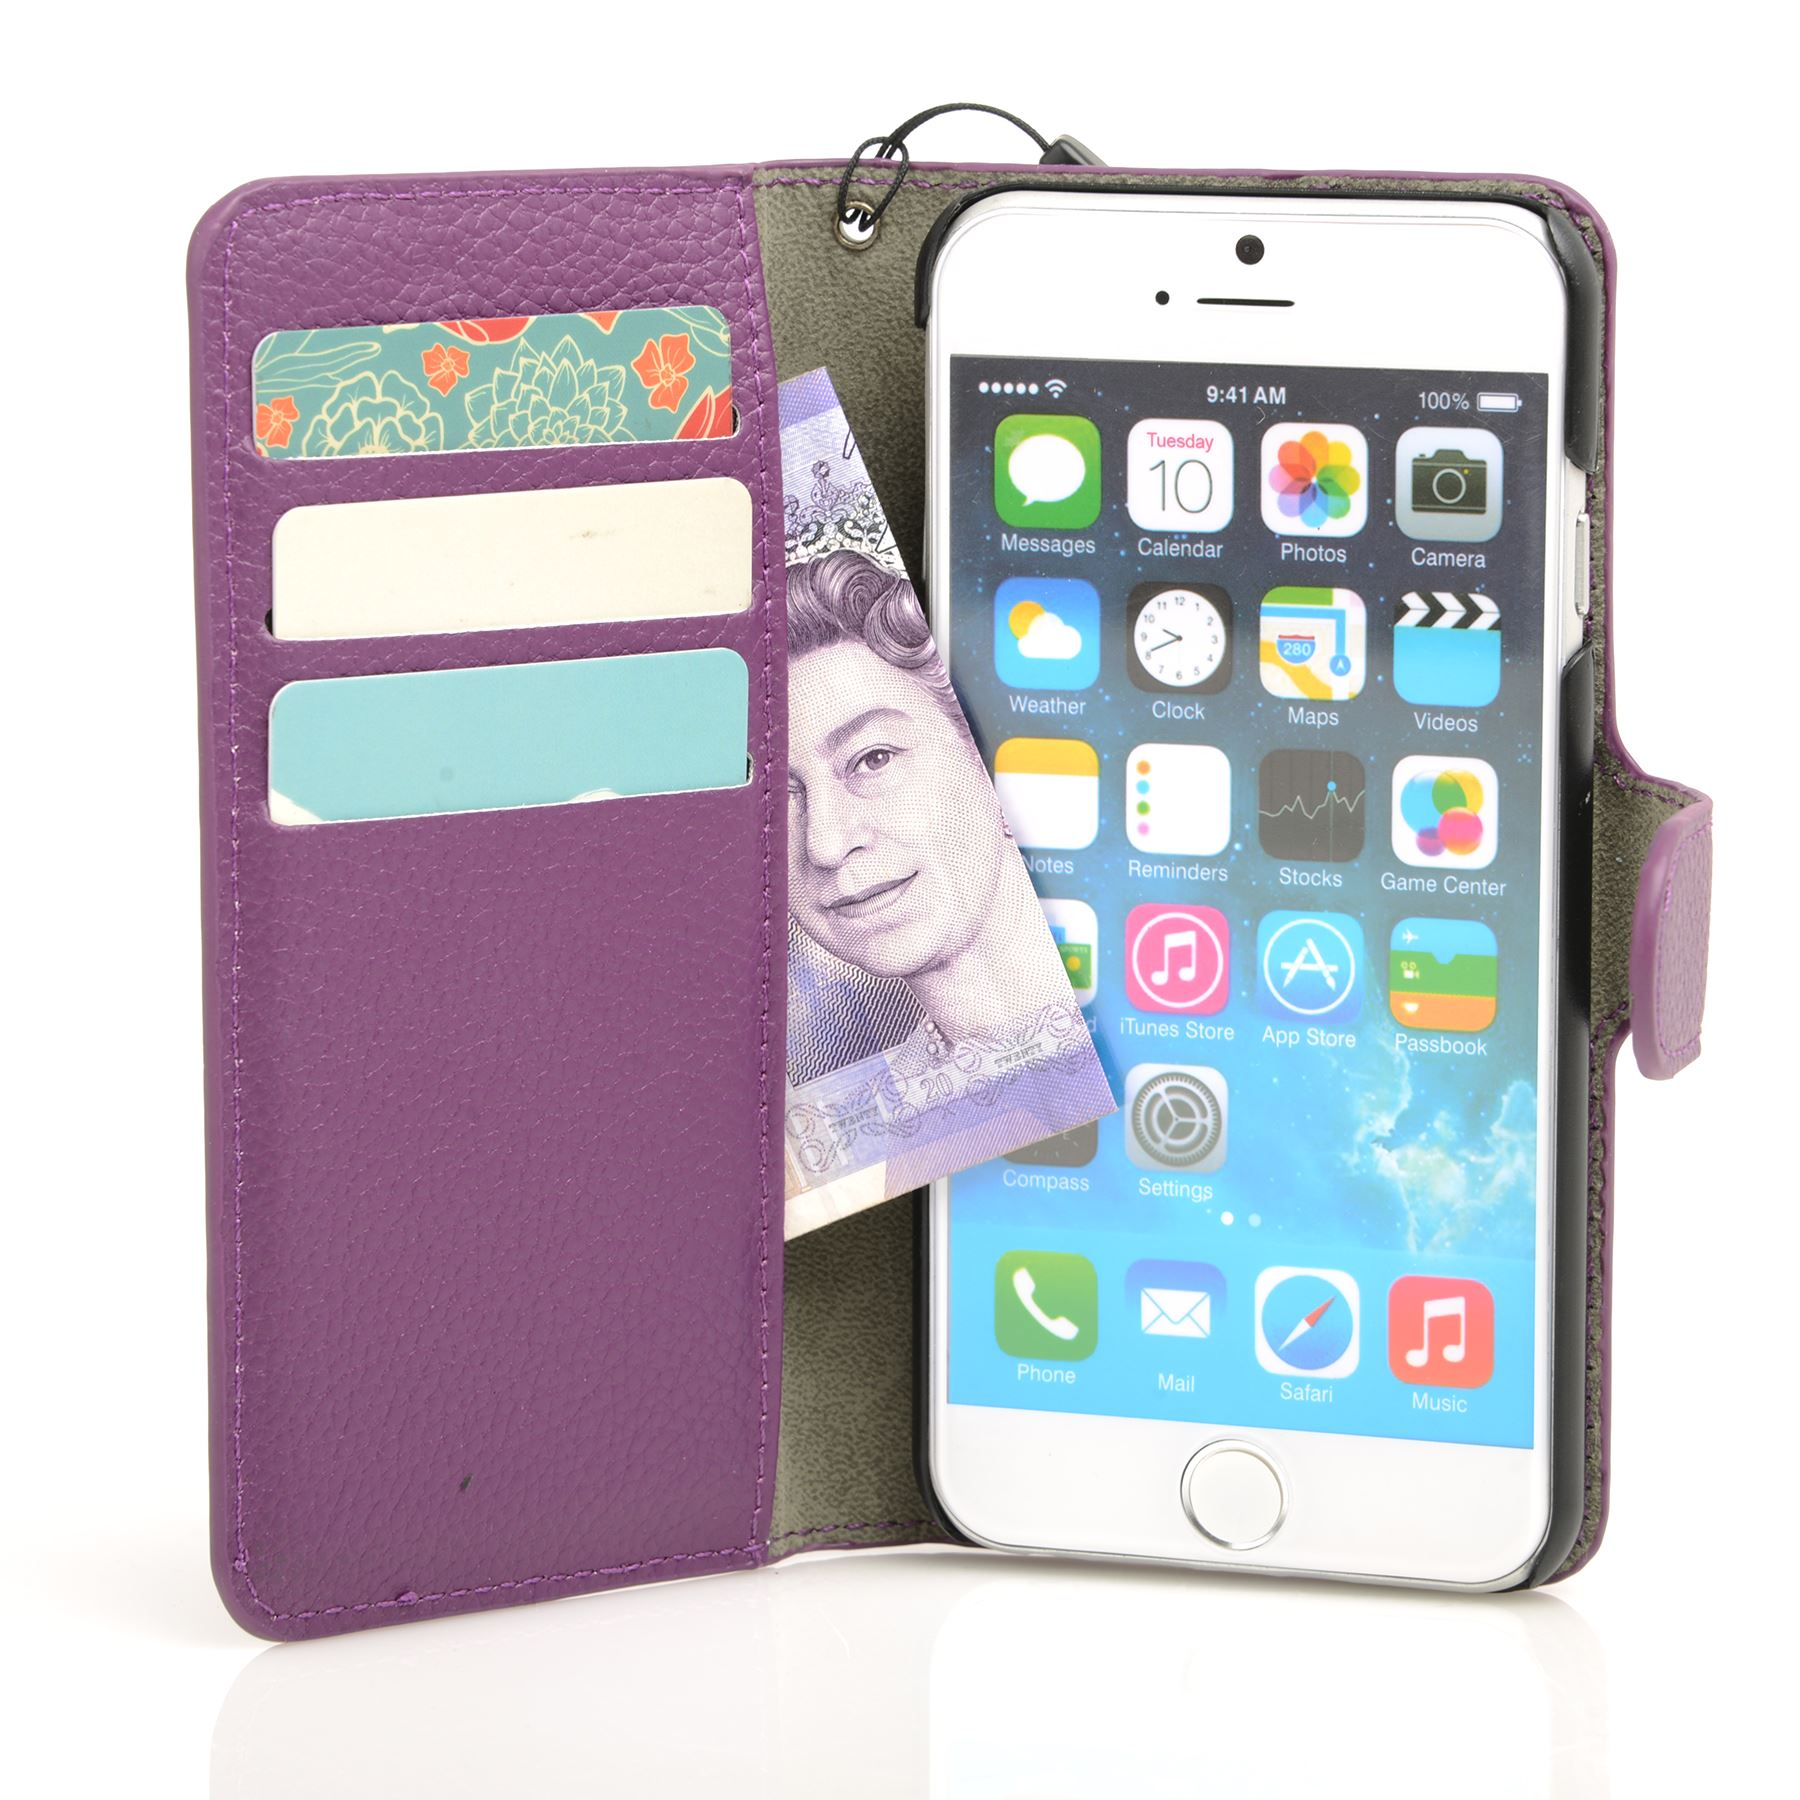 thumbnail 28 - For Apple iPhone 6s 6 Case Premium Textured Leather Wallet Madcase Cover